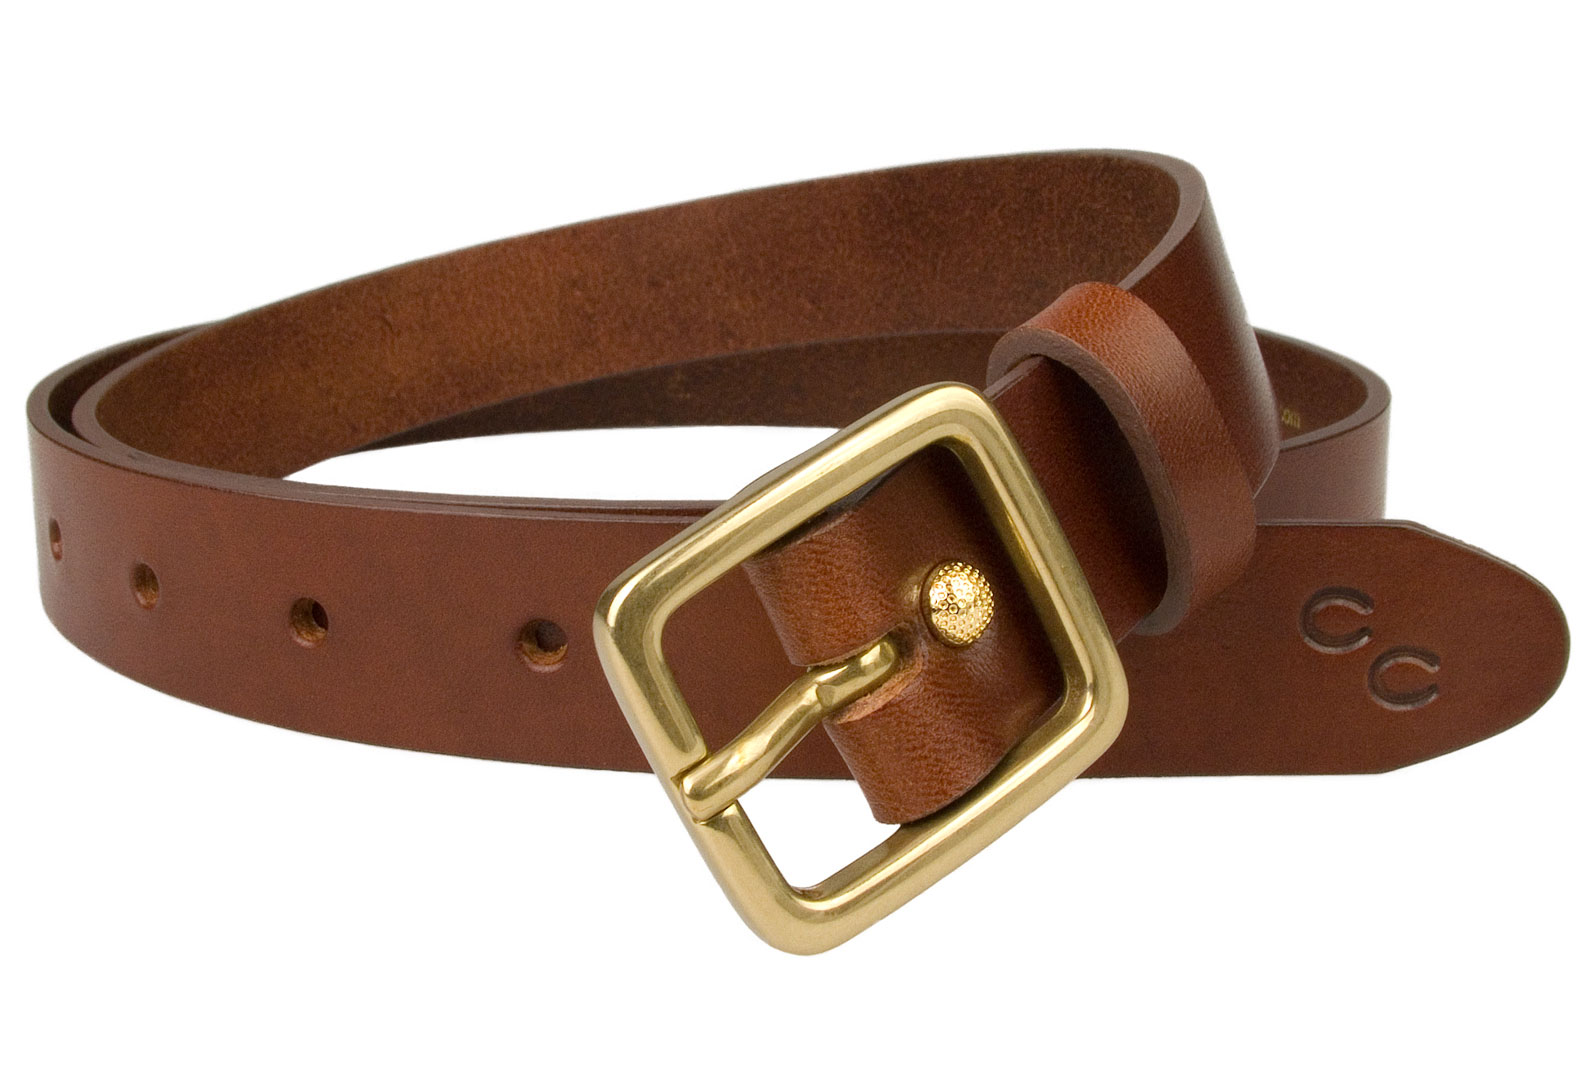 e2a52f71c Champion Chase ™ Leather Belt Light Chestnut 2.5 cm Wide. High quality 1  inch wide